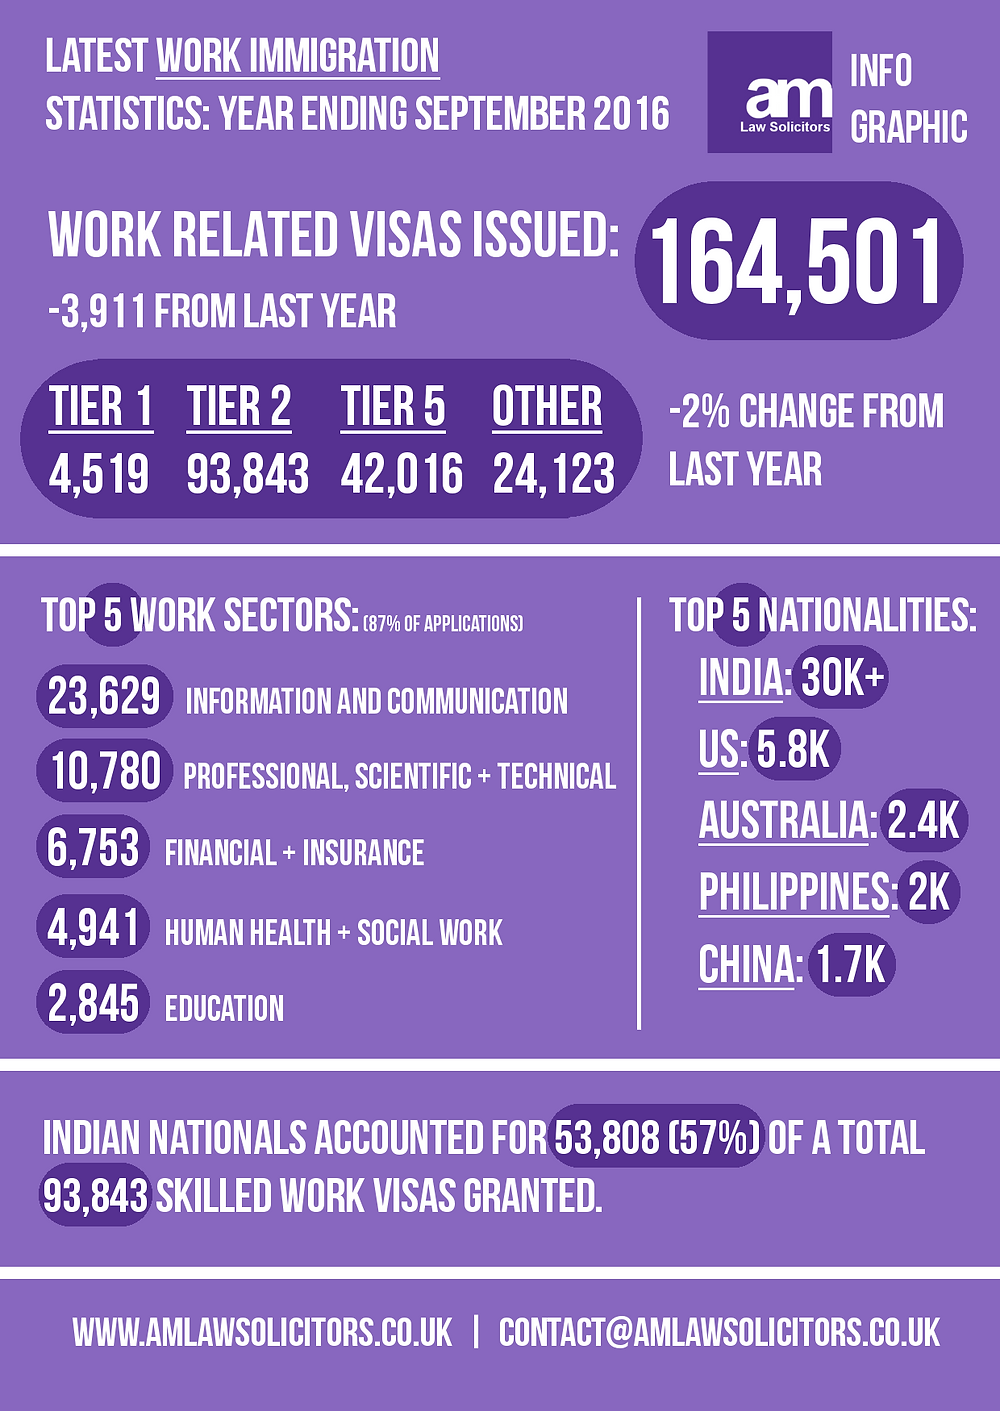 [Infographic] Latest Work Immigration Statistics - Year End September 2016.